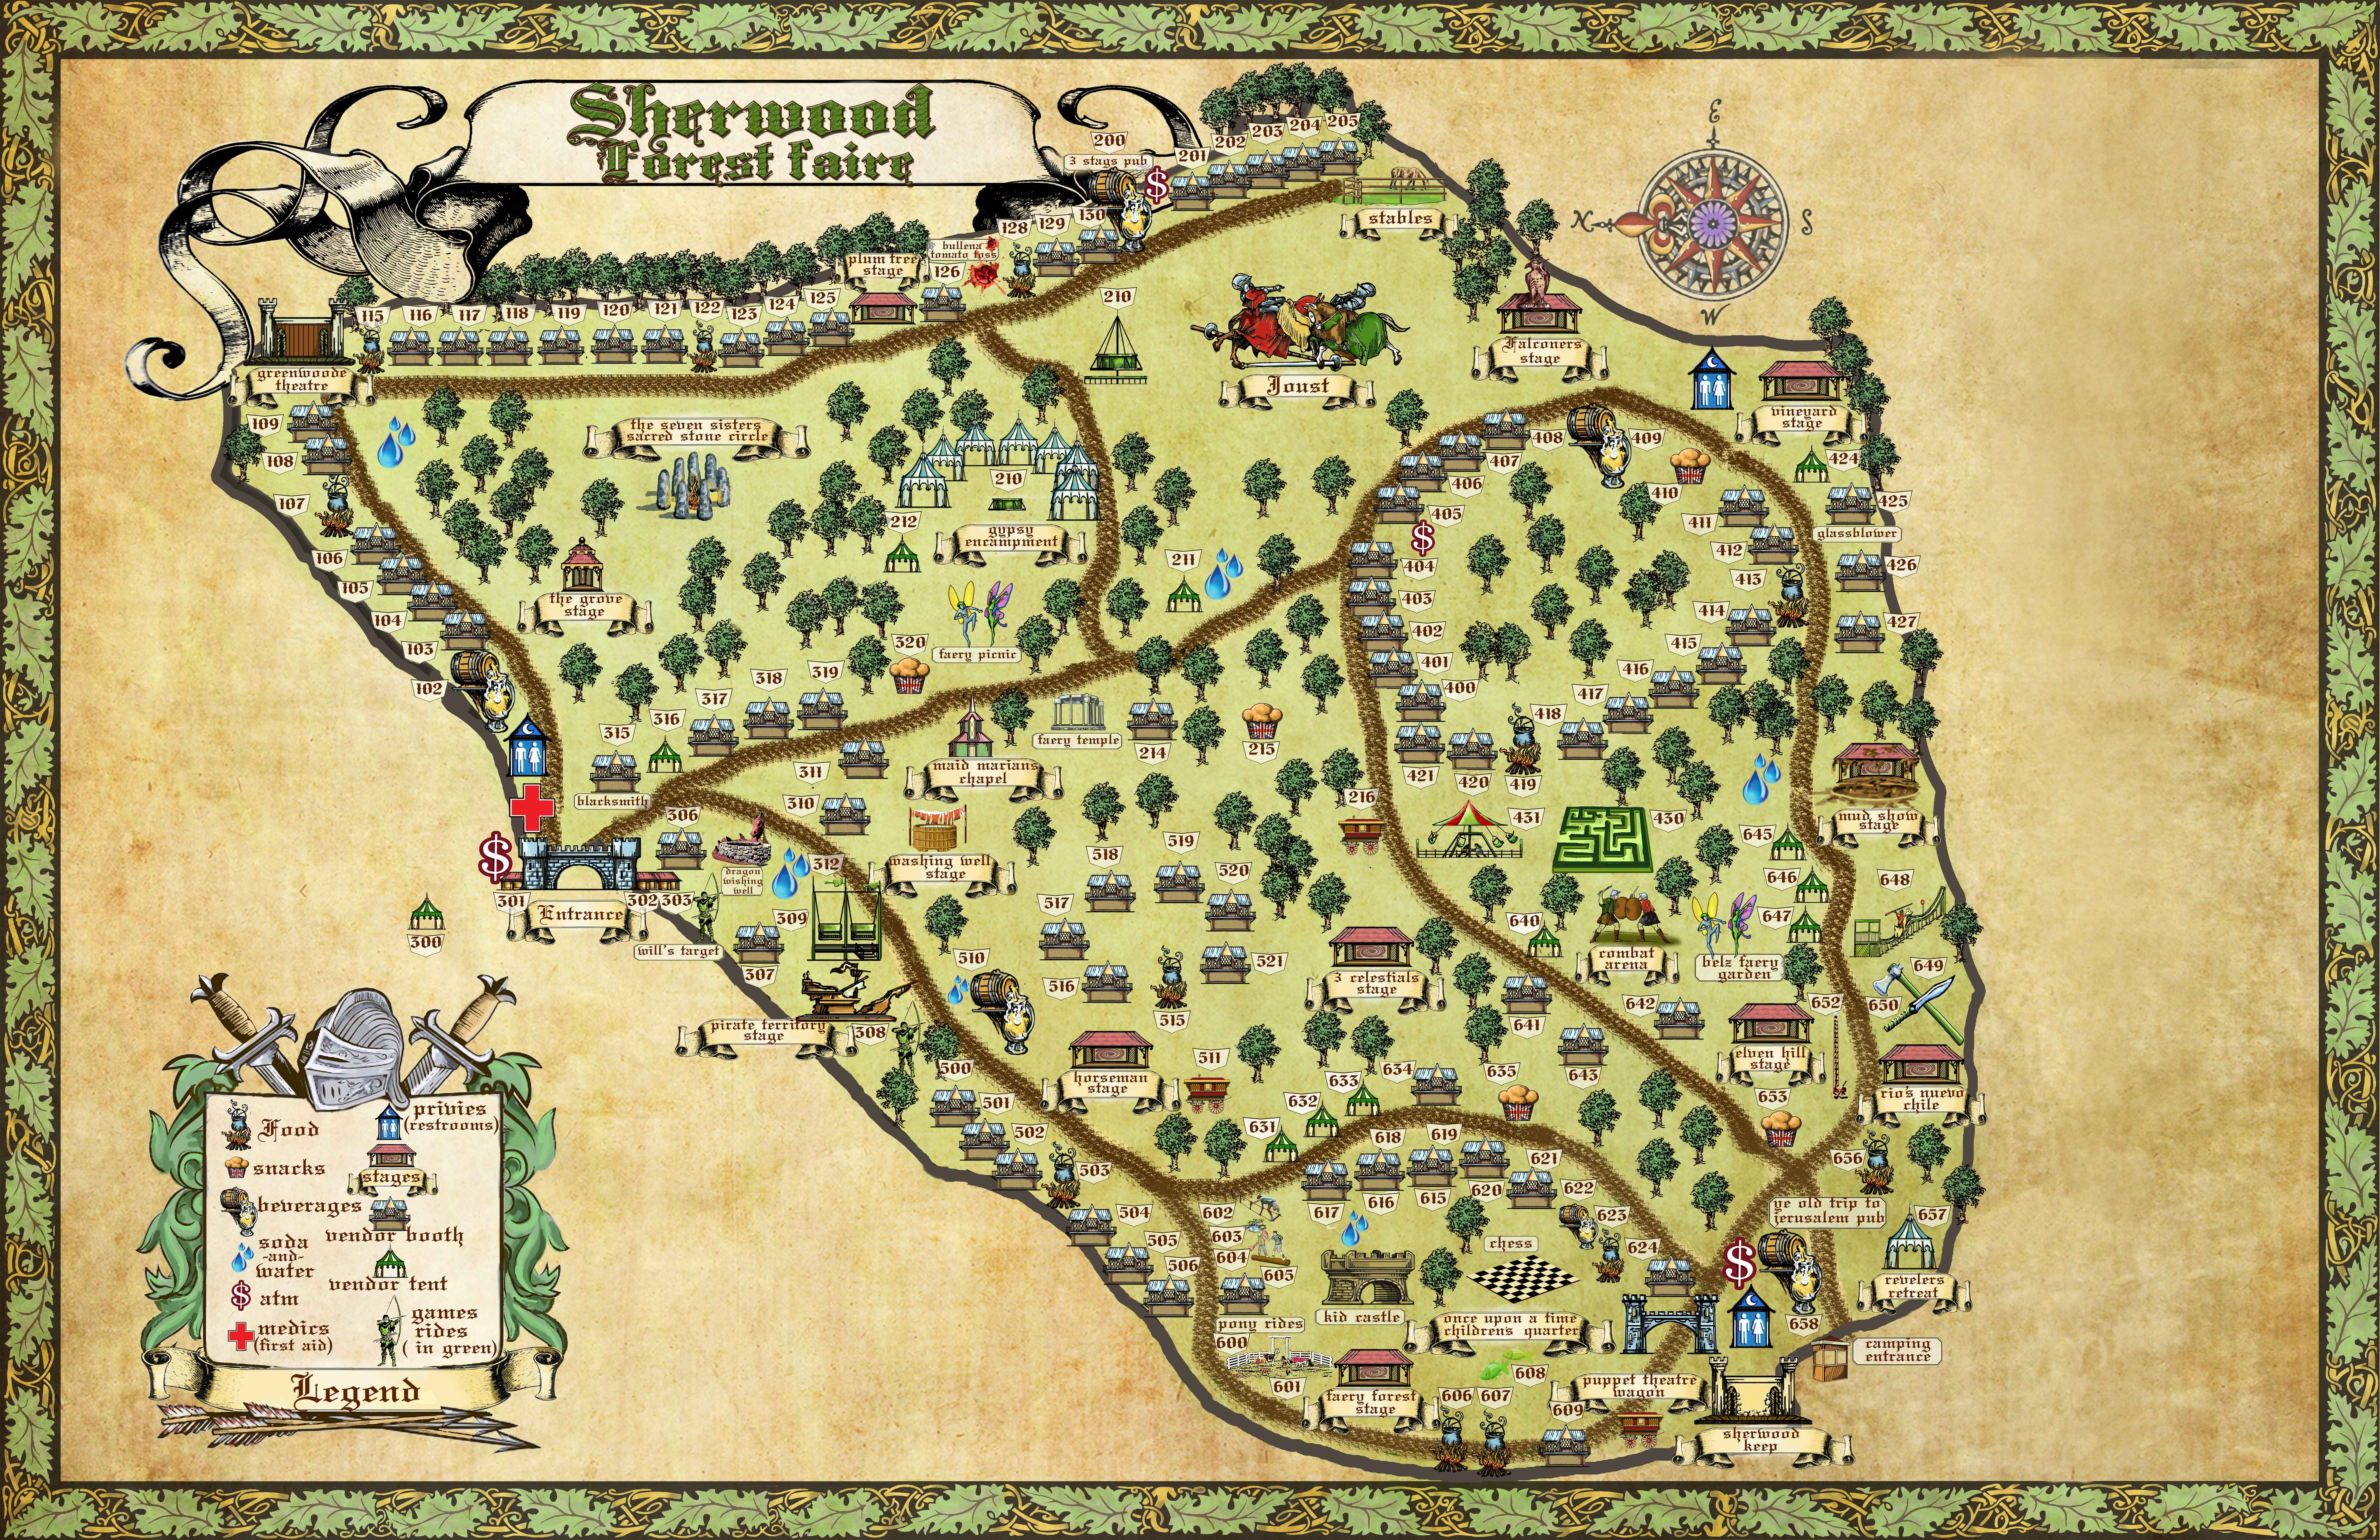 Sherwood Forest Map 2013 Sherwood Forest Faire Map McDade, Tx March 2015 | Awsome  Sherwood Forest Map